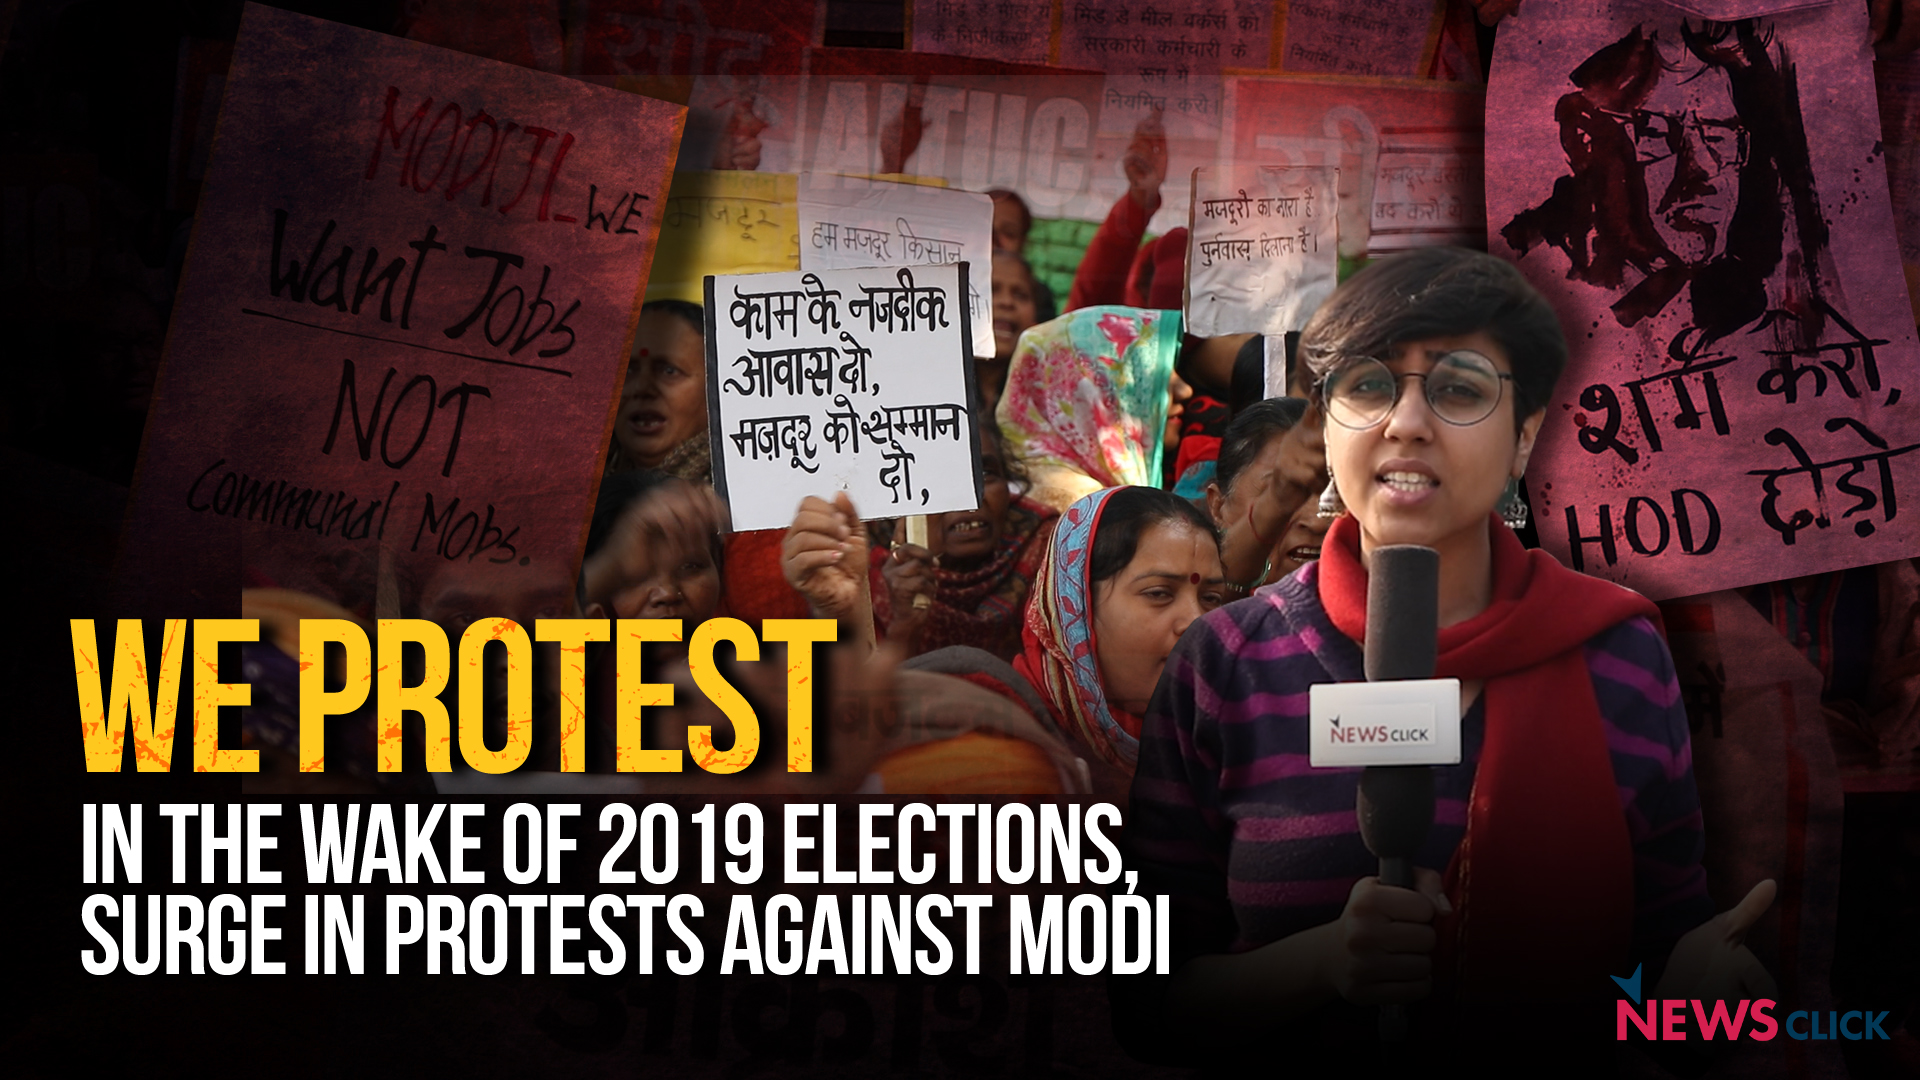 In the Wake of 2019 General Elections, Surge in Protests Against PM Modi